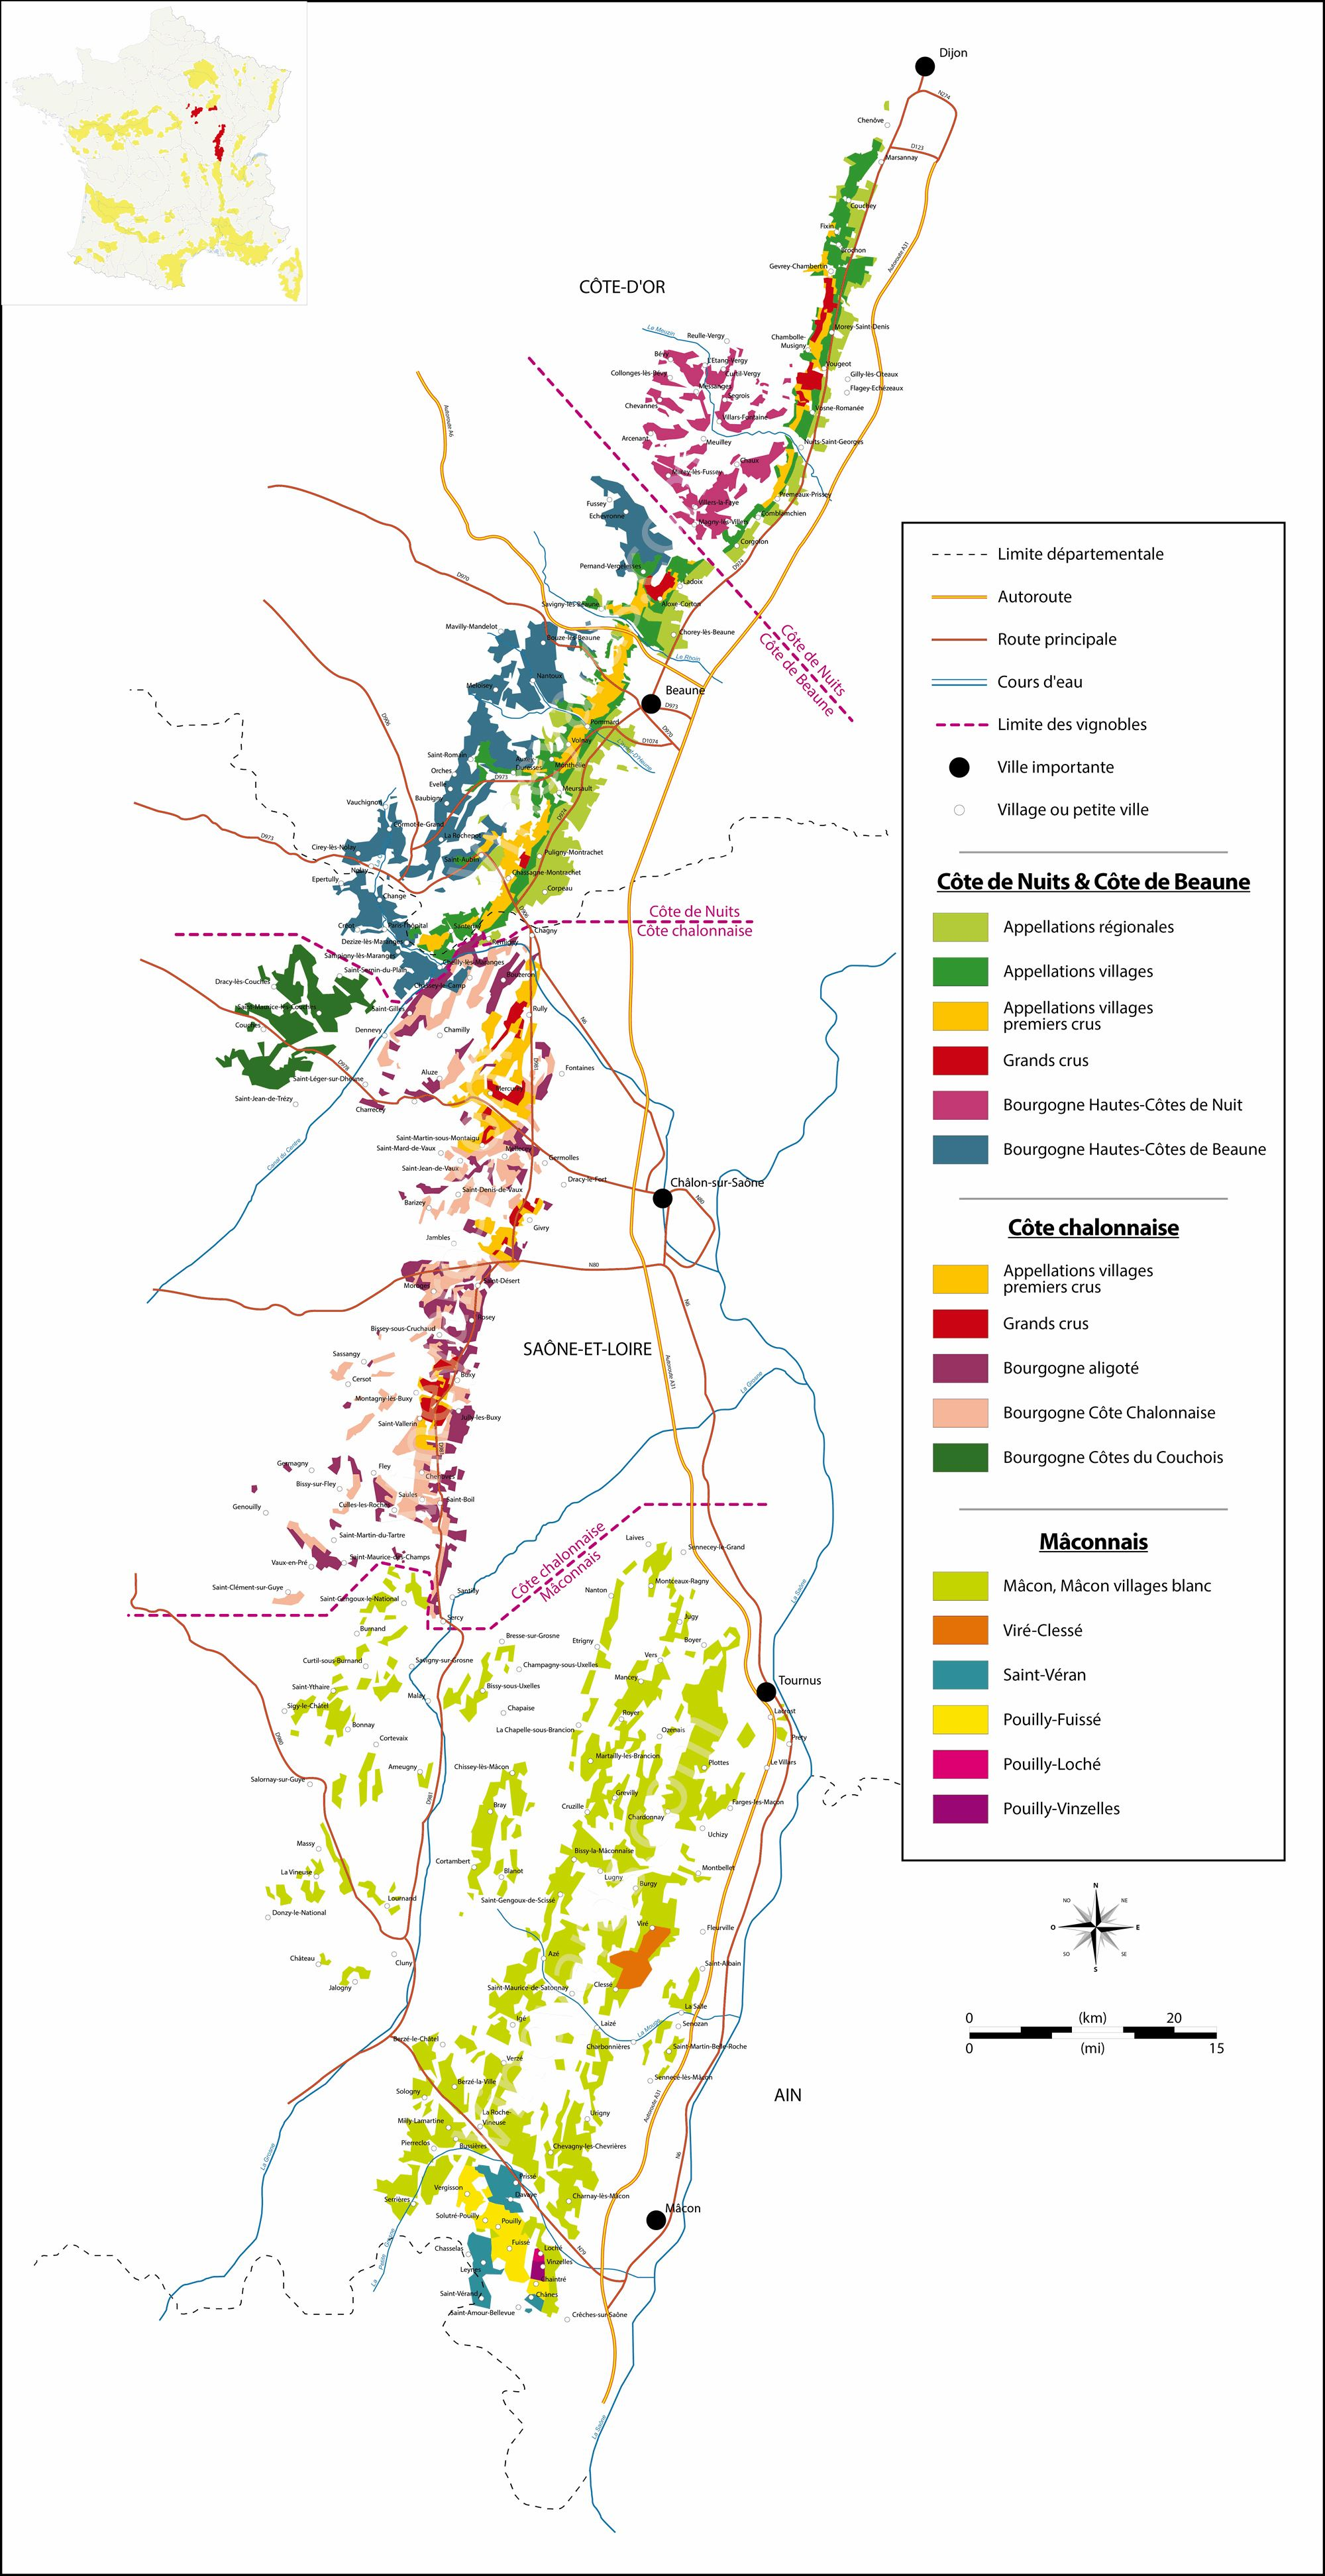 France Wine Subway Map.Large Burgundy Maps For Free Download And Print High Resolution